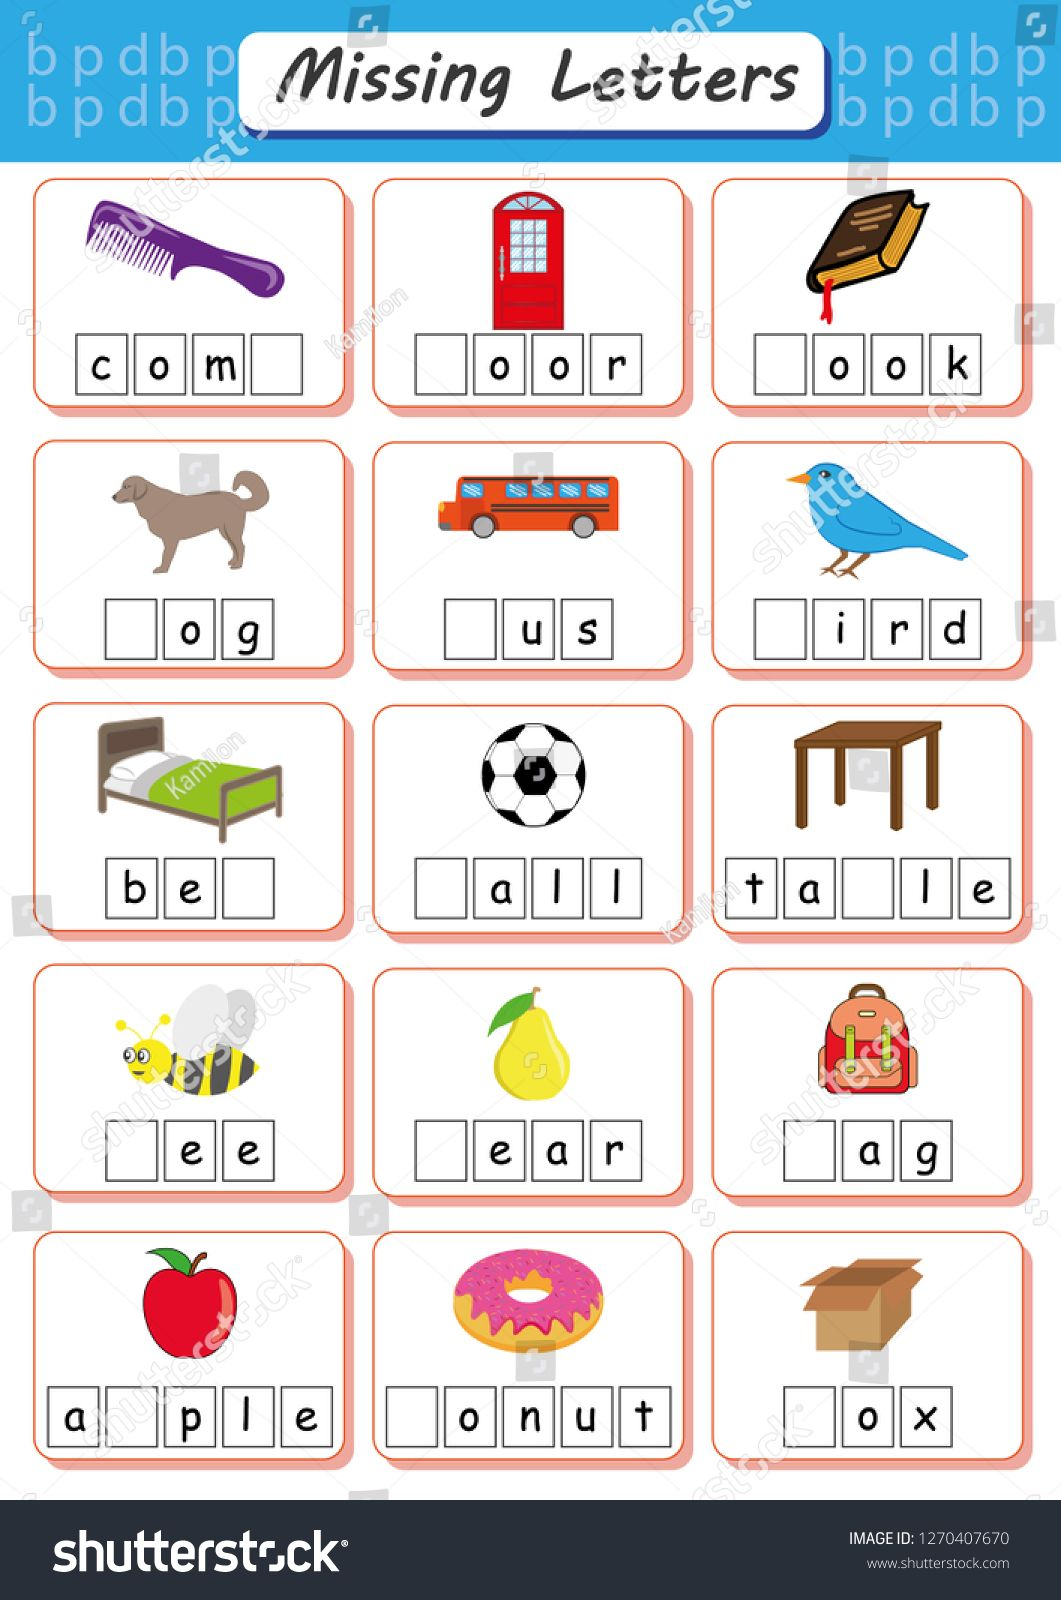 Missing Letters Find The Missing Letters And Write Them In Relevant Places Missing Letter Worksheets Kindergarten Worksheets Kindergarten Literacy Worksheets Write missing letter worksheet